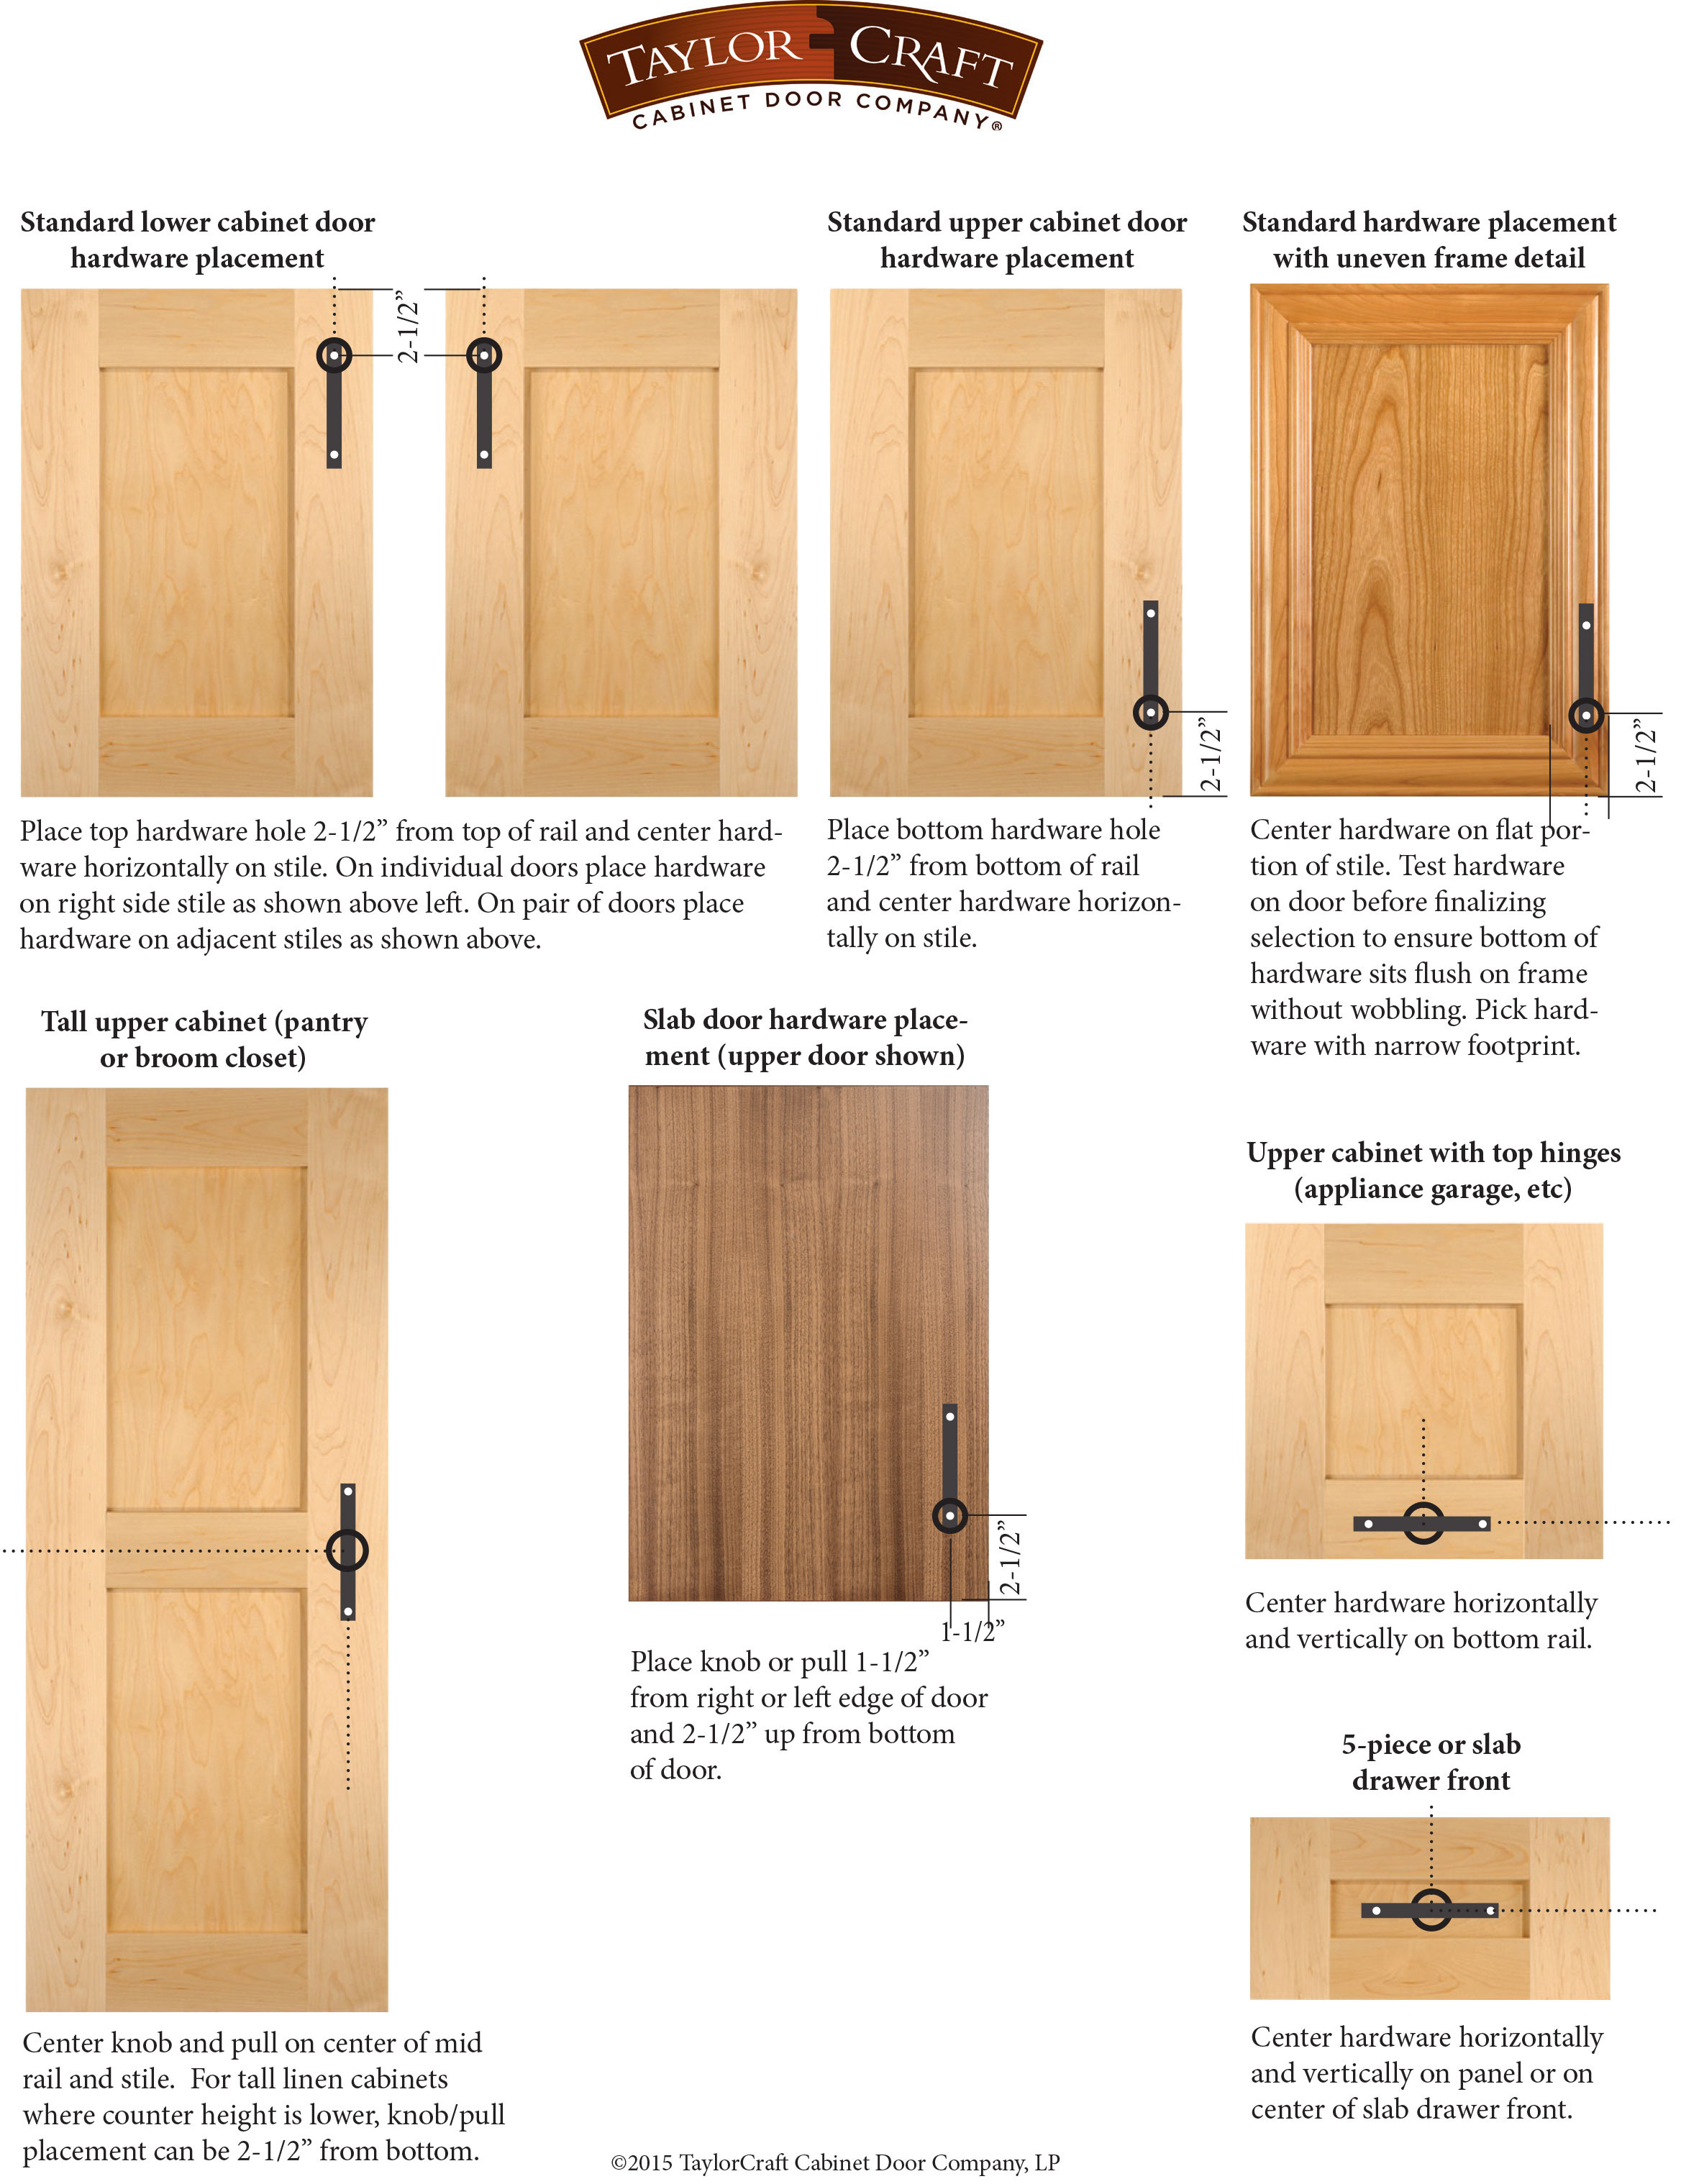 Where to Put Knobs On Cabinet Doors Fresh Cabinet Door Hardware Placement Guidelines Taylorcraft